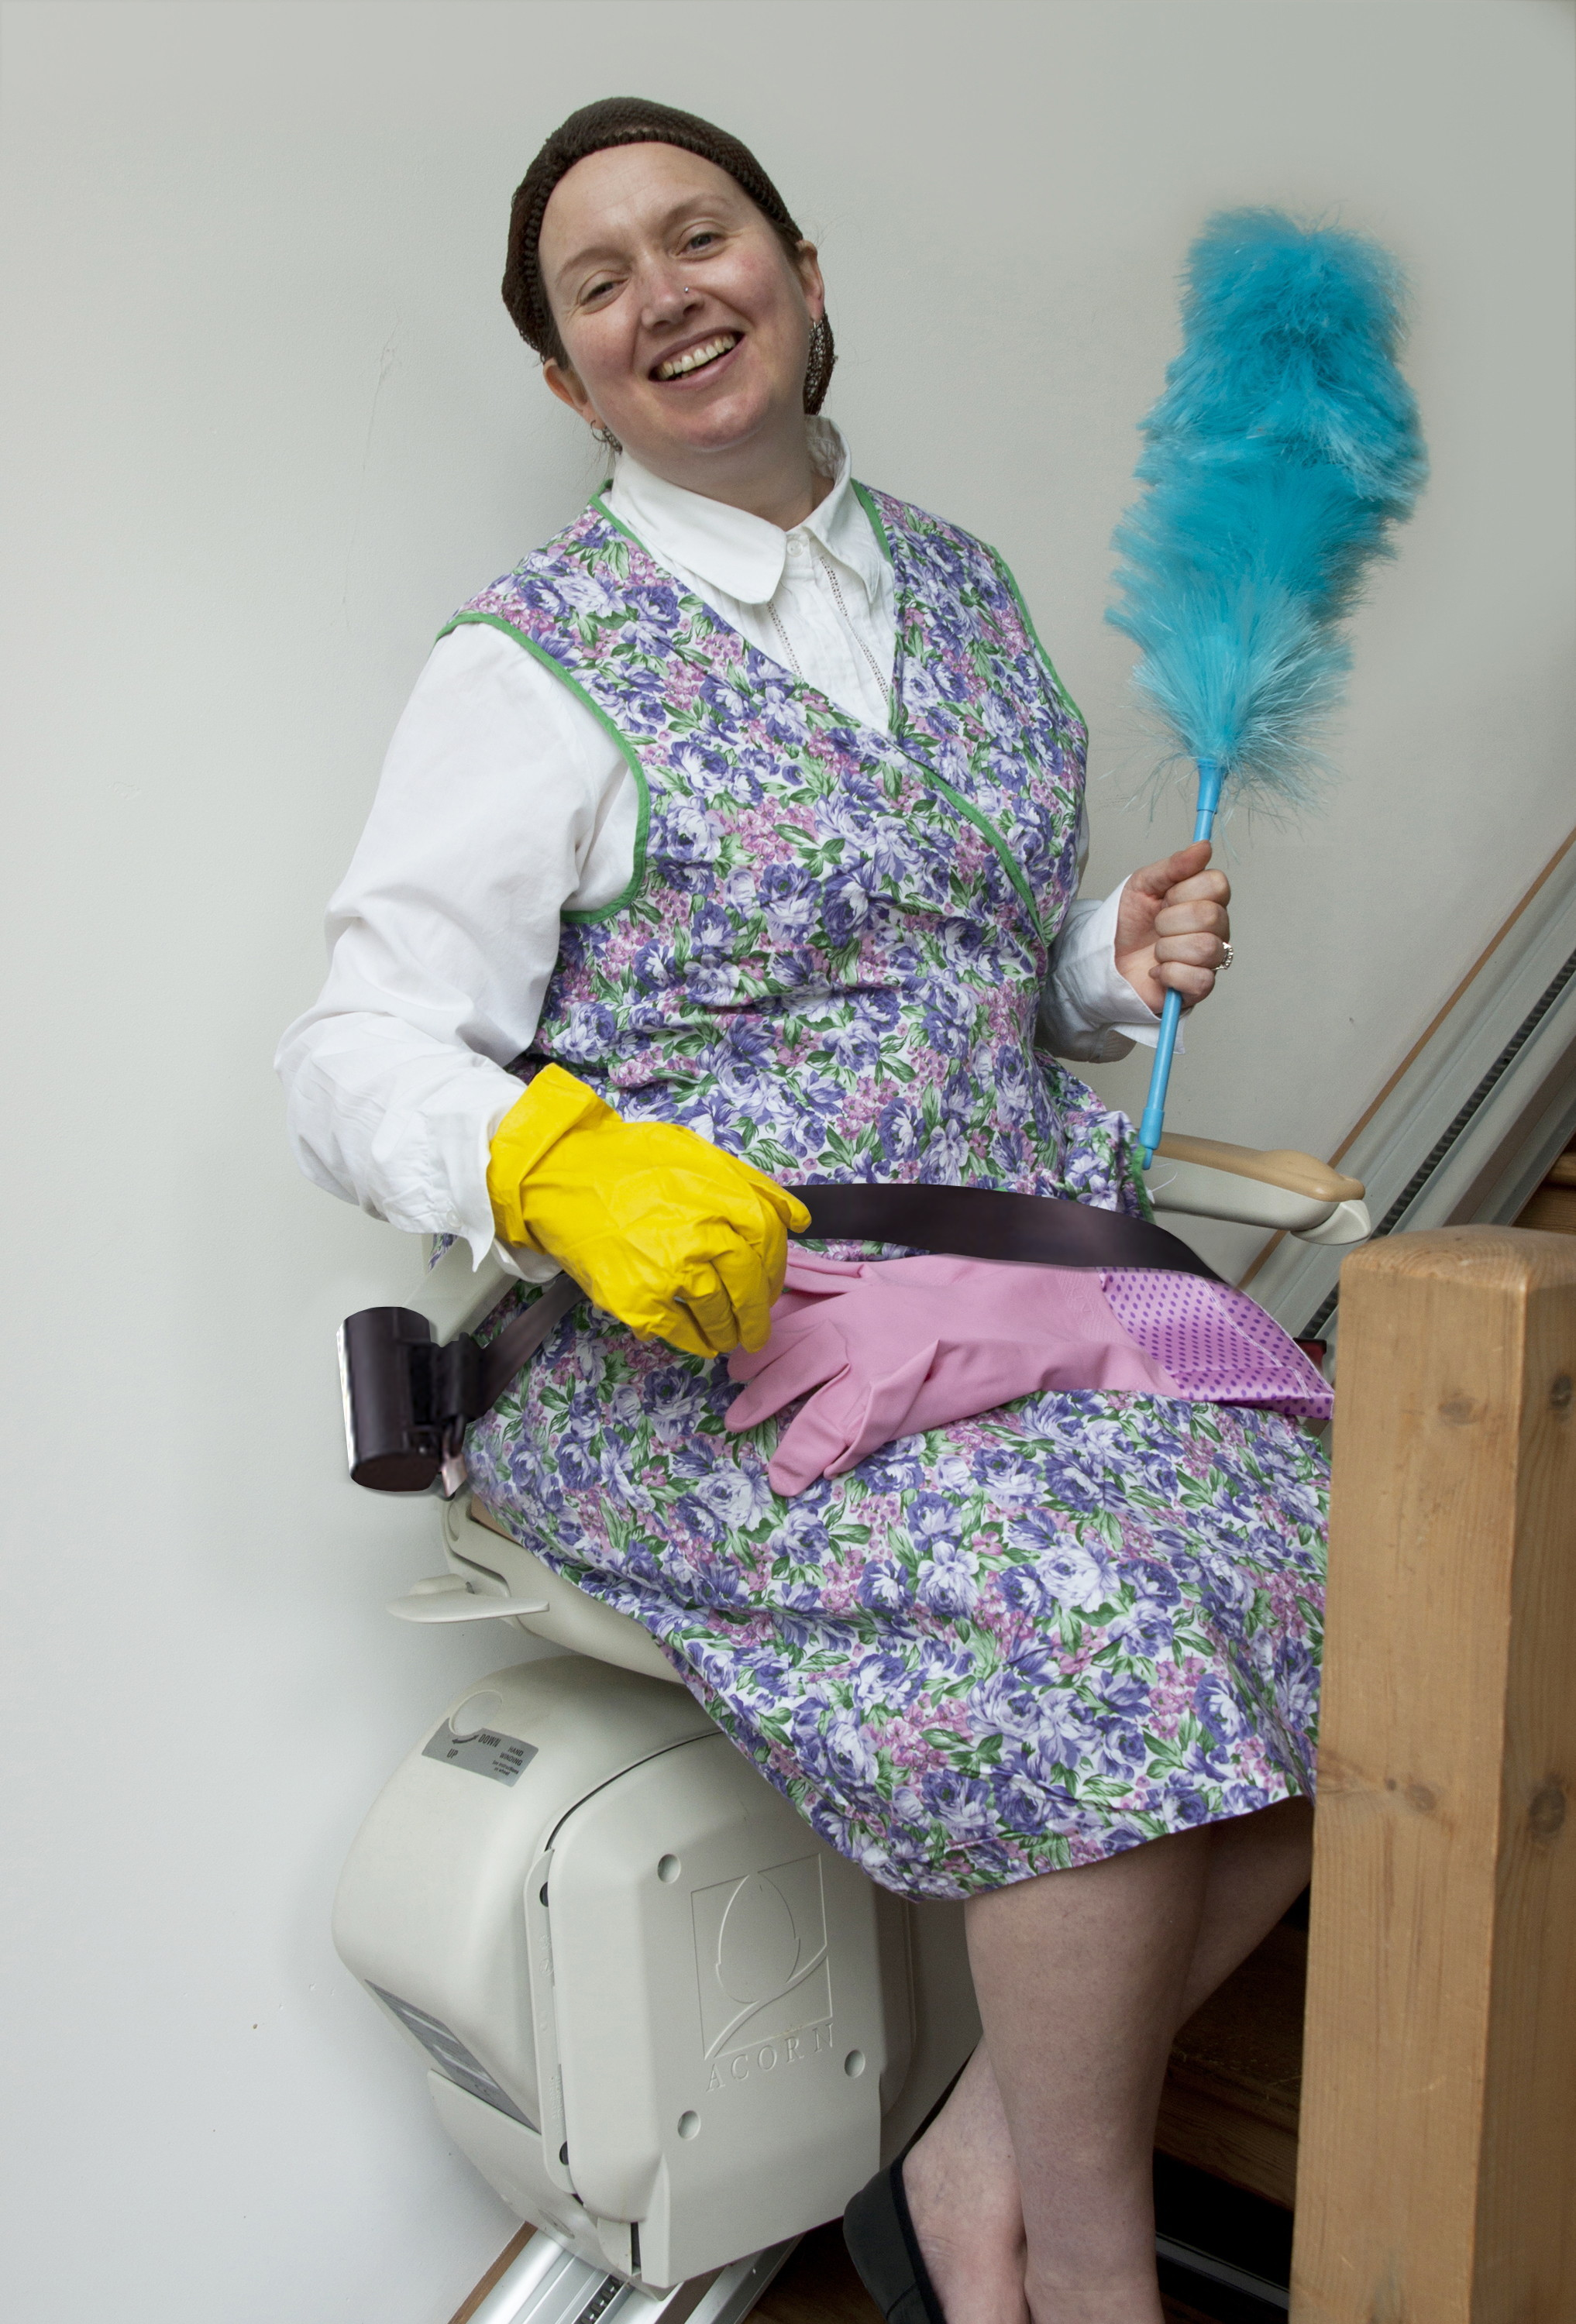 Nadine Darnley as Mrs Overall on an Acorn stairlift in the latest production of Acorn Antiques the Musical